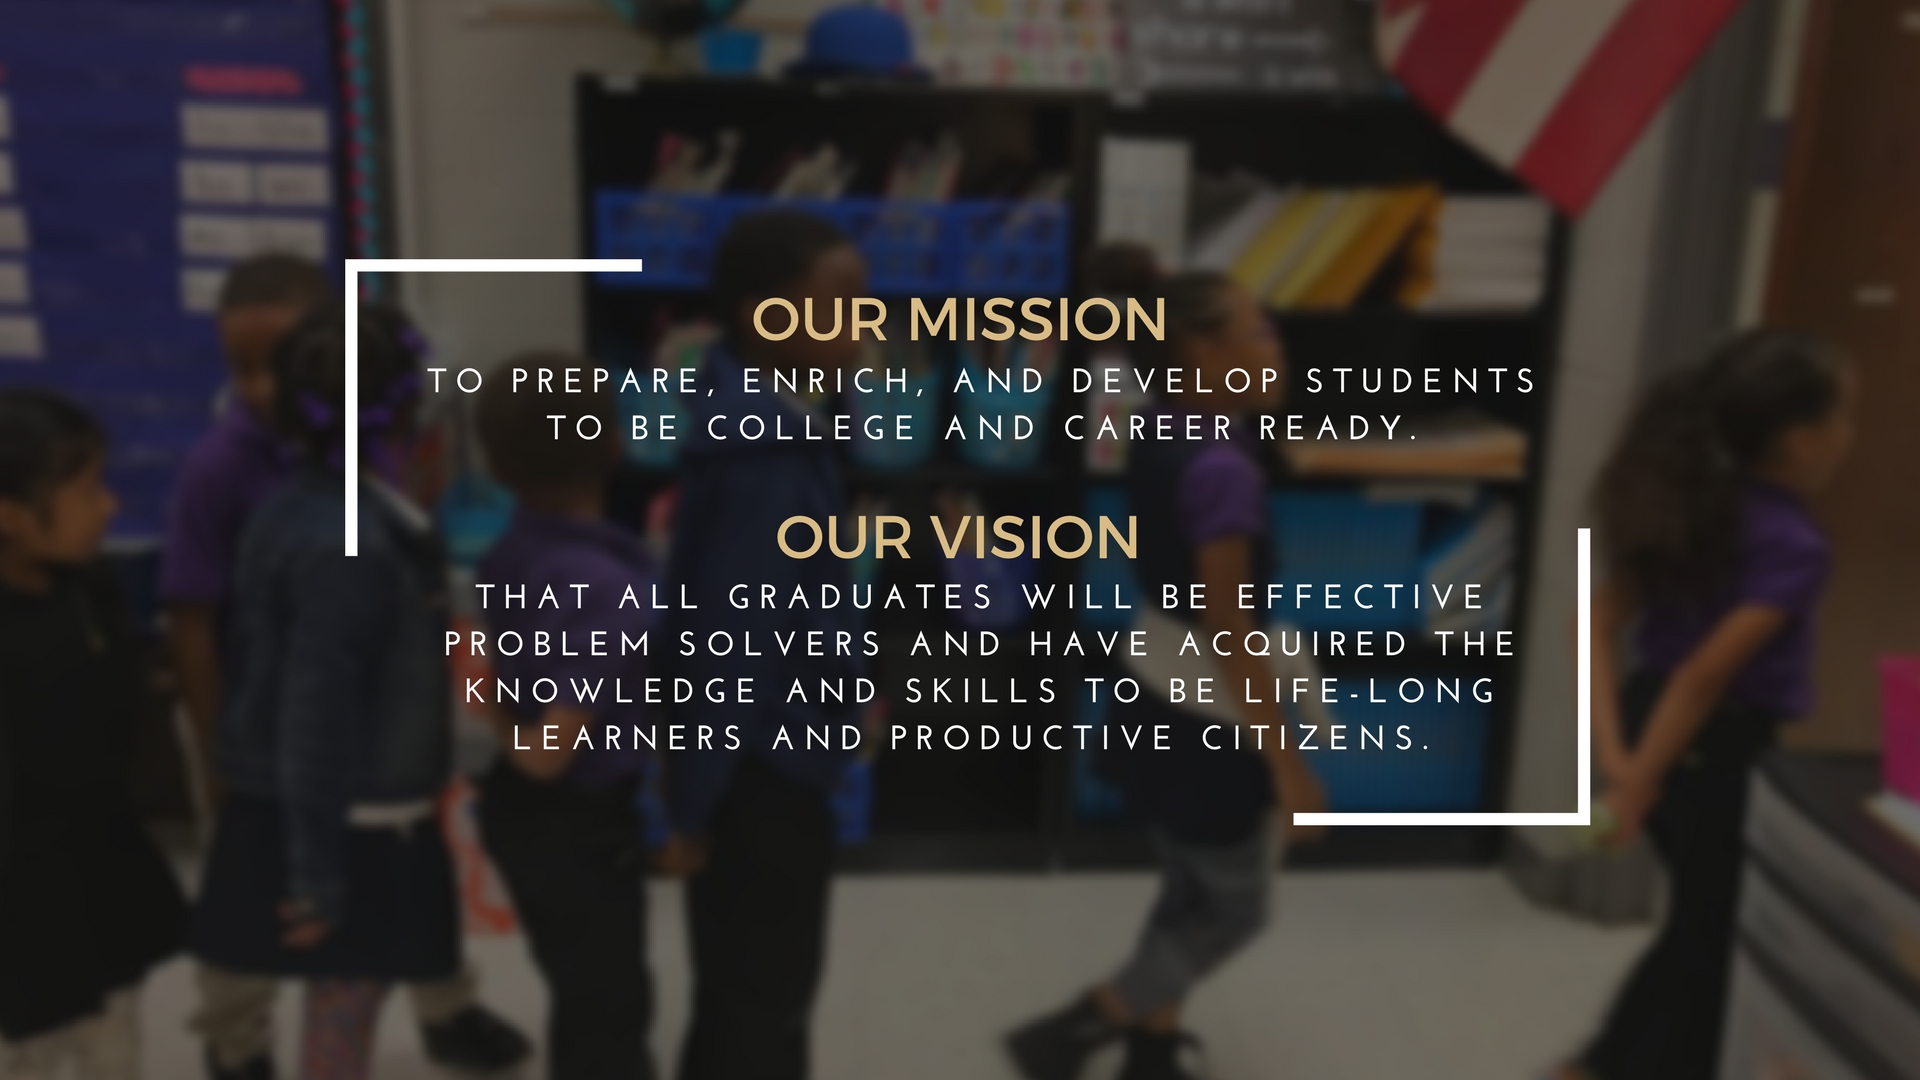 Our mission: To prepare, enrich, and develop students to be college and career ready.